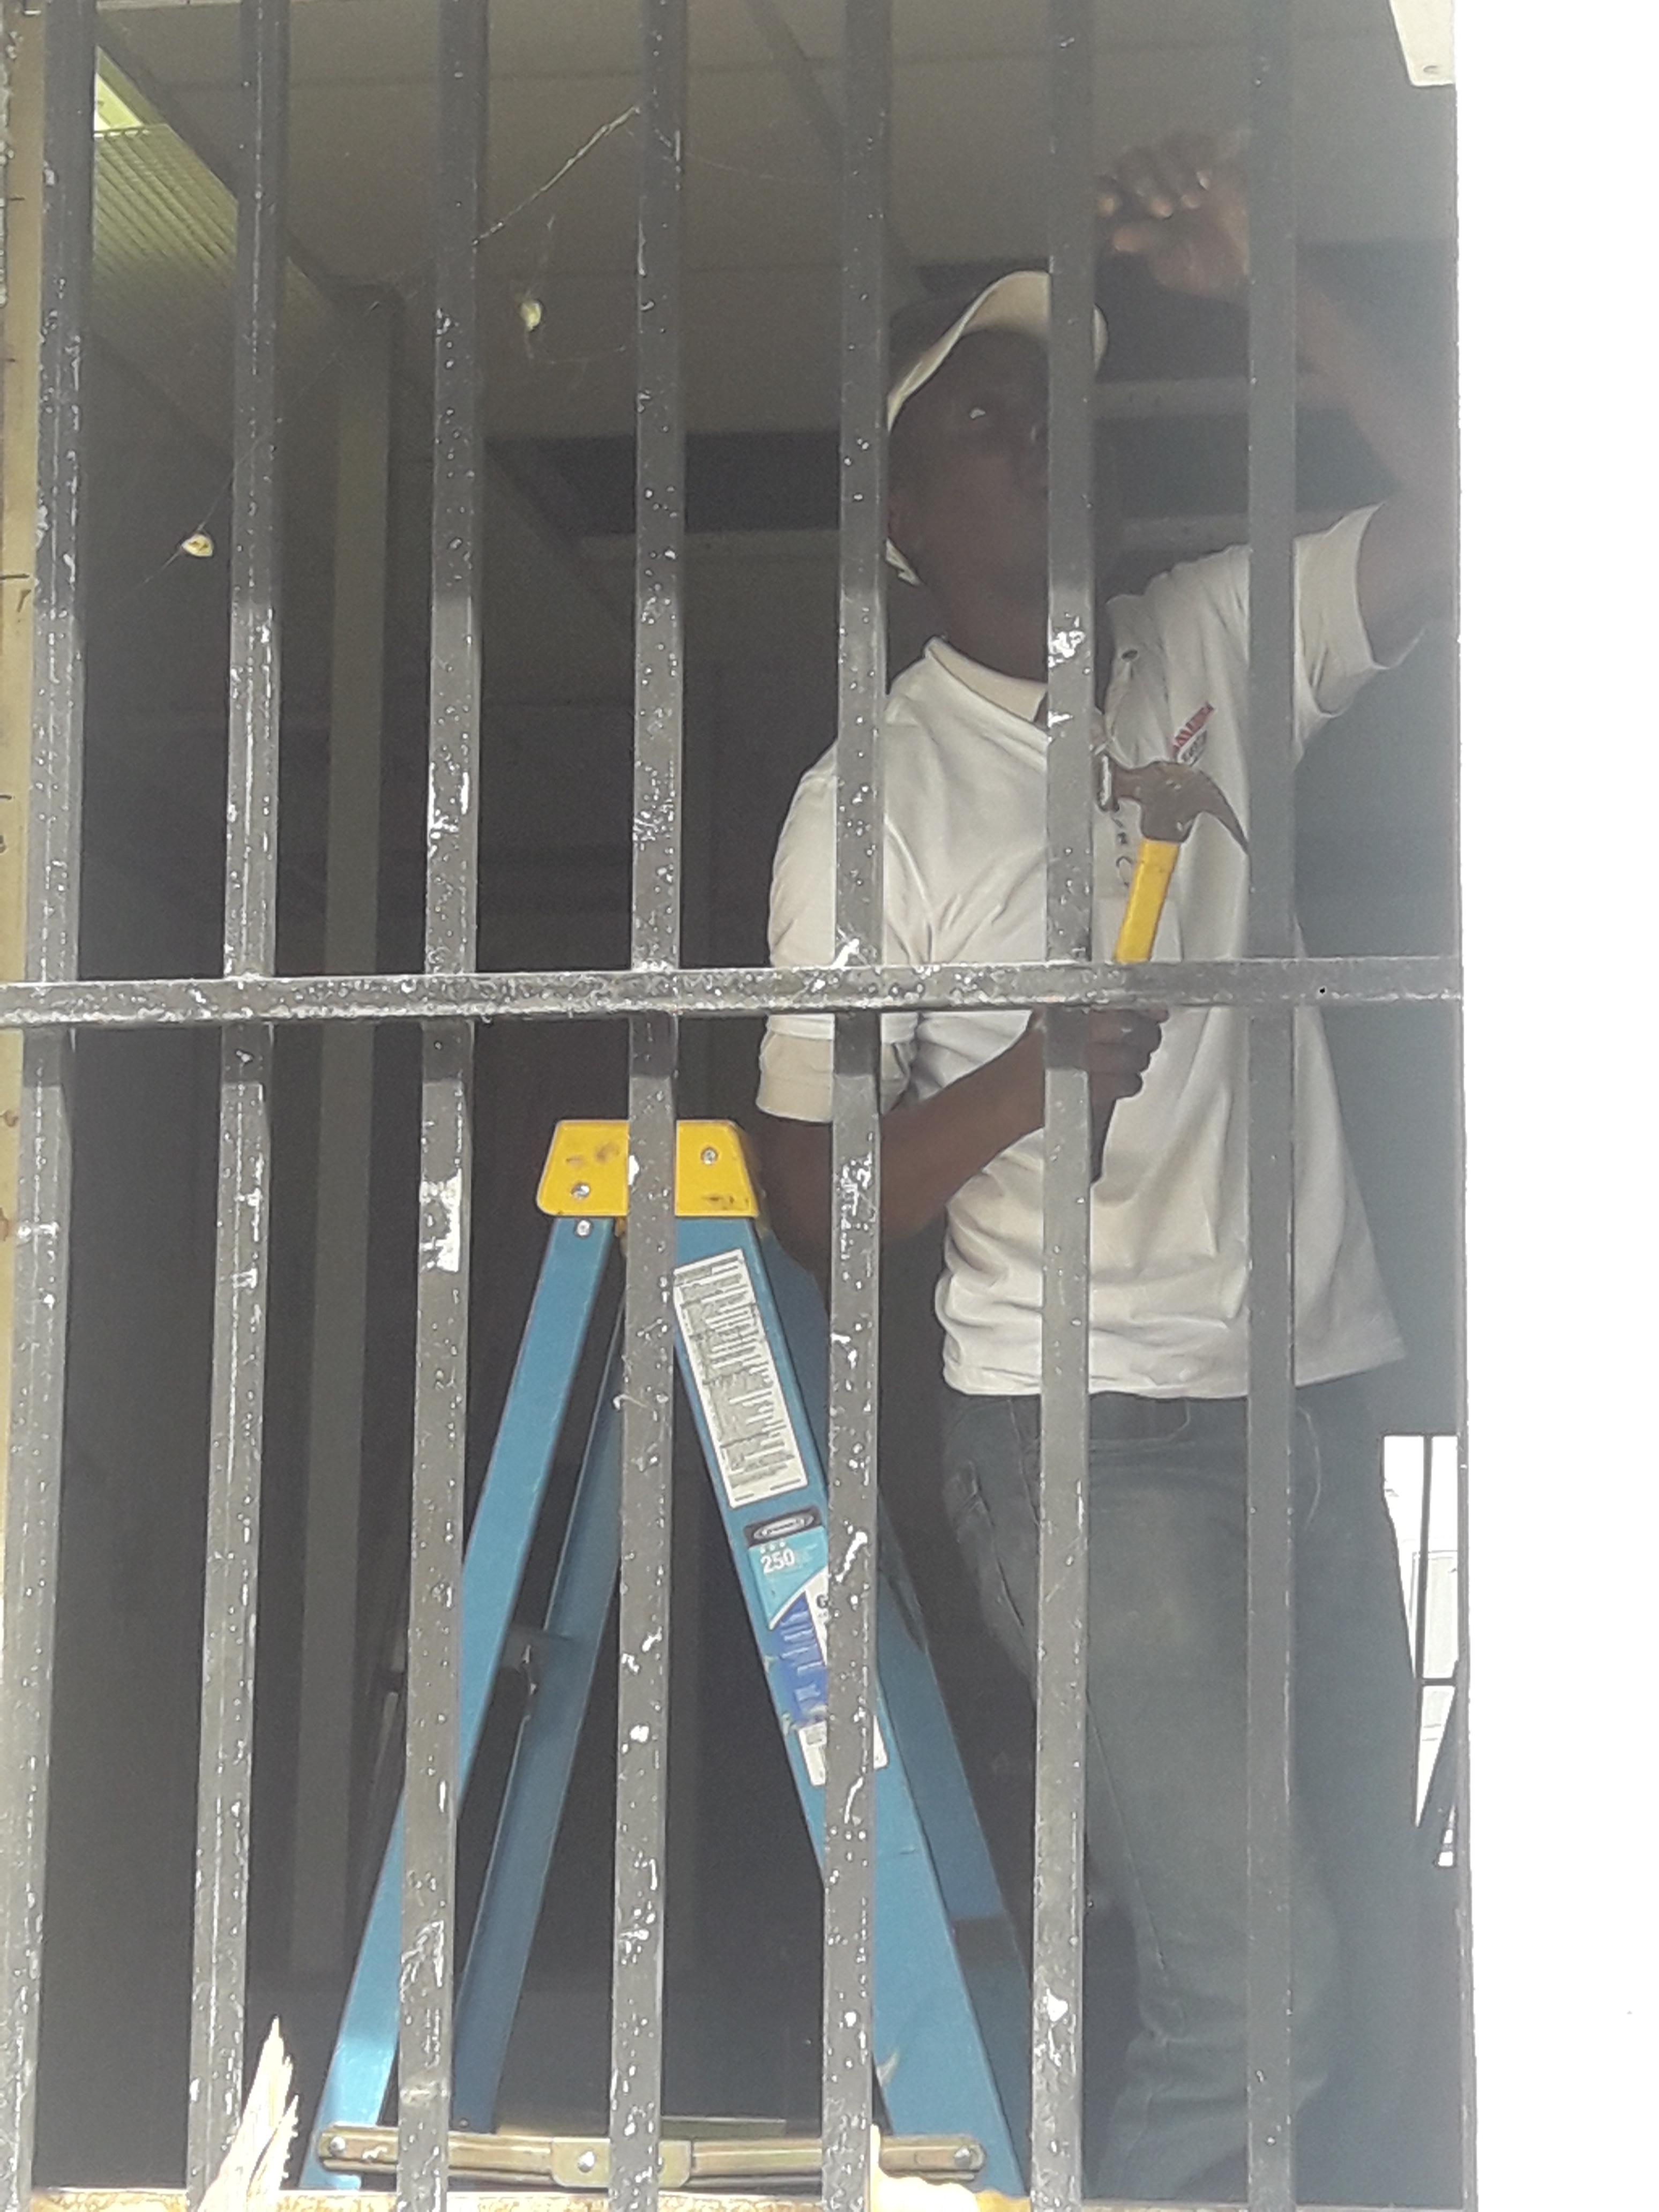 Renovation work at the police station 1